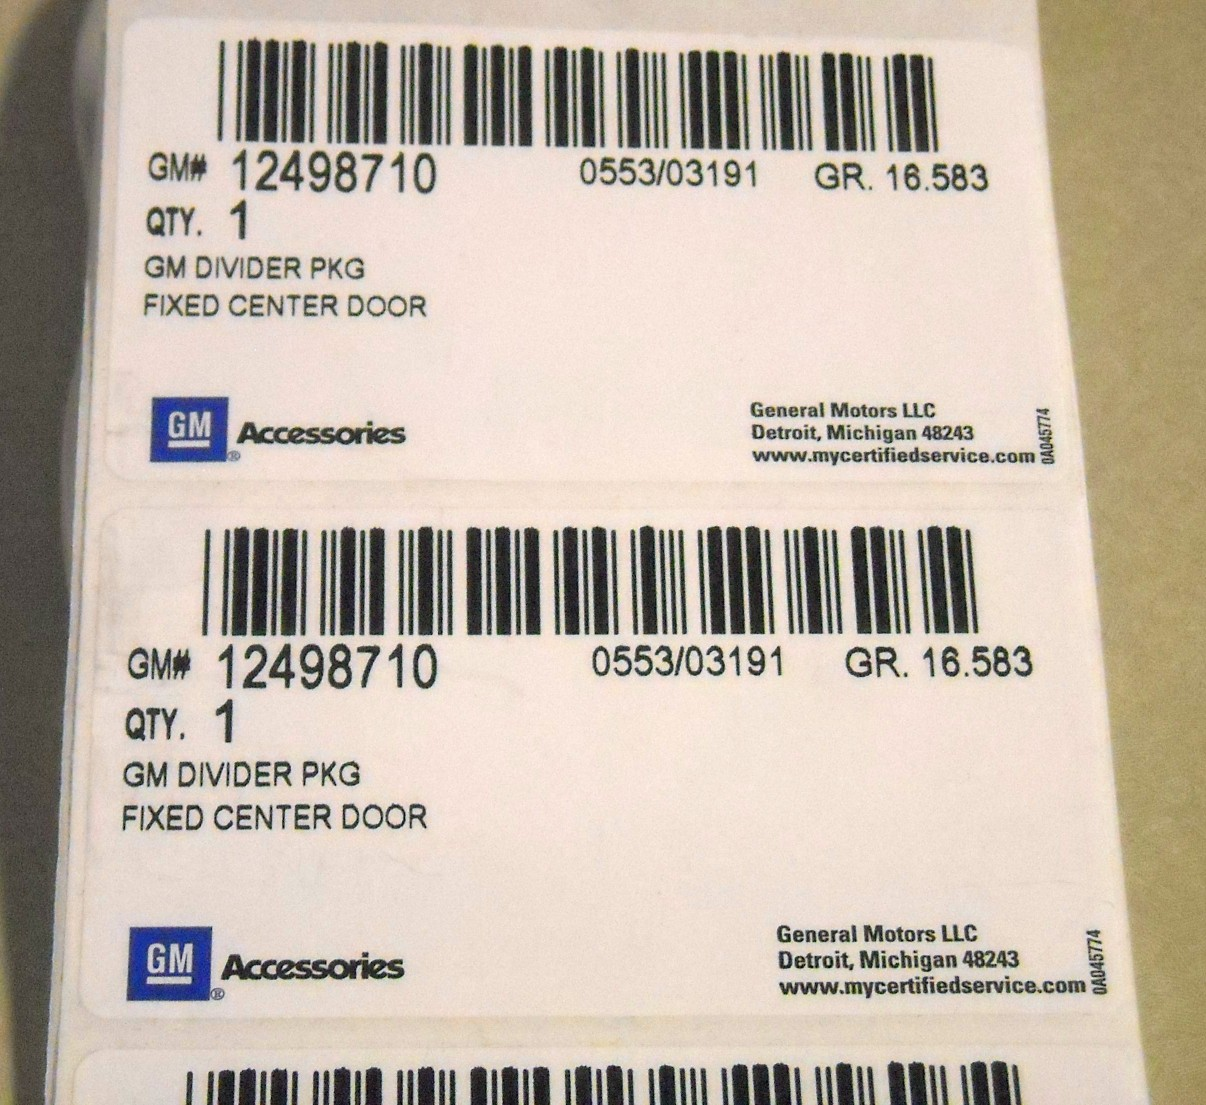 Container Dunnage Sample Labels Product Pages